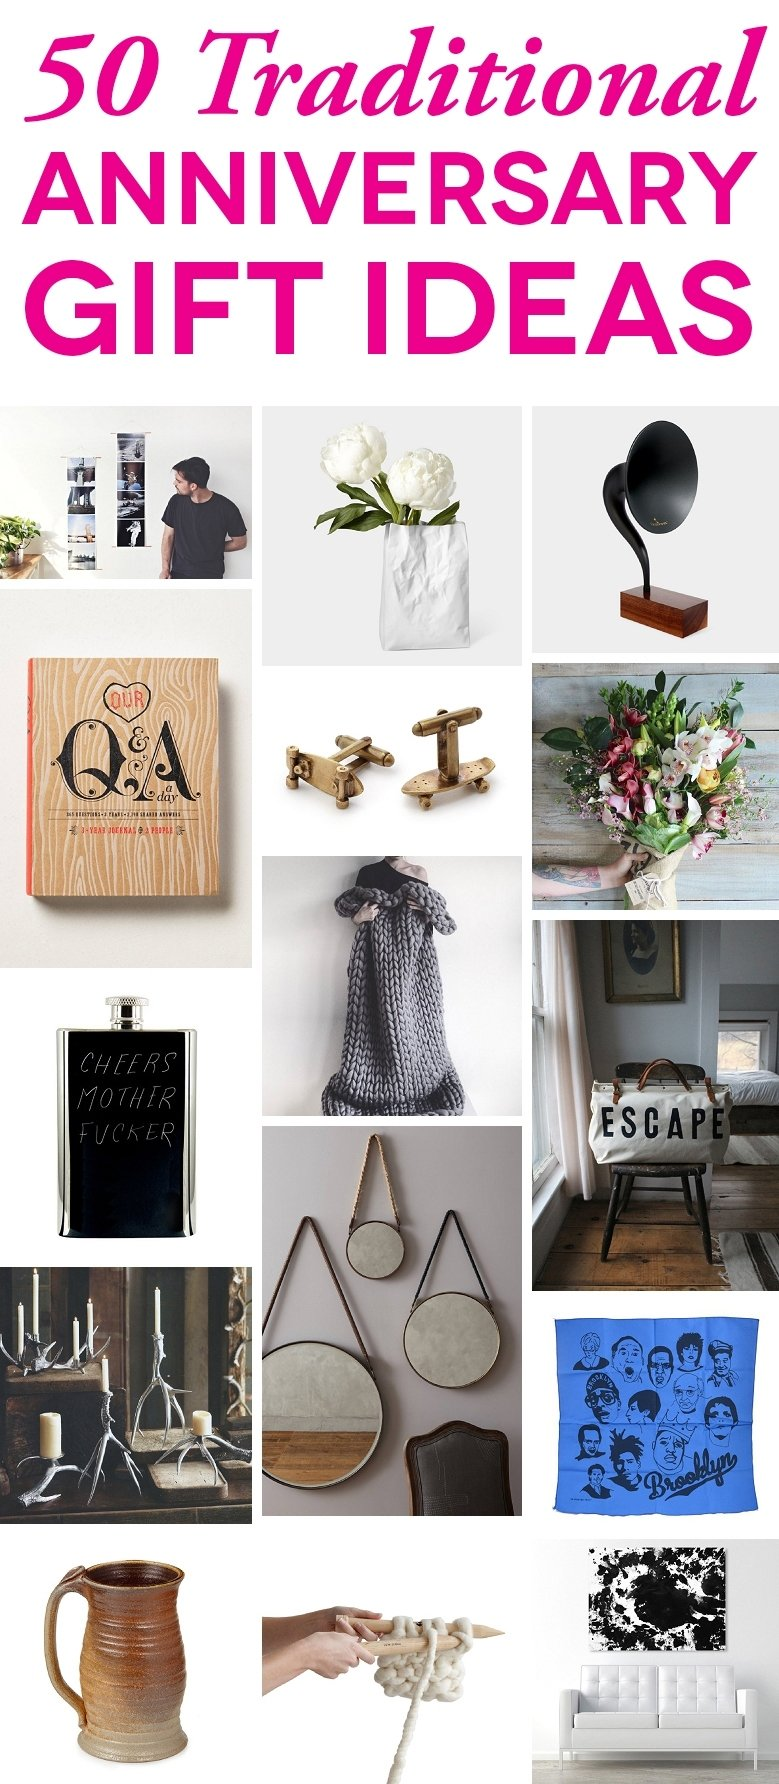 10 Fantastic Gift Ideas For Wedding Anniversary traditional anniversary giftsyear a practical wedding 29 2020